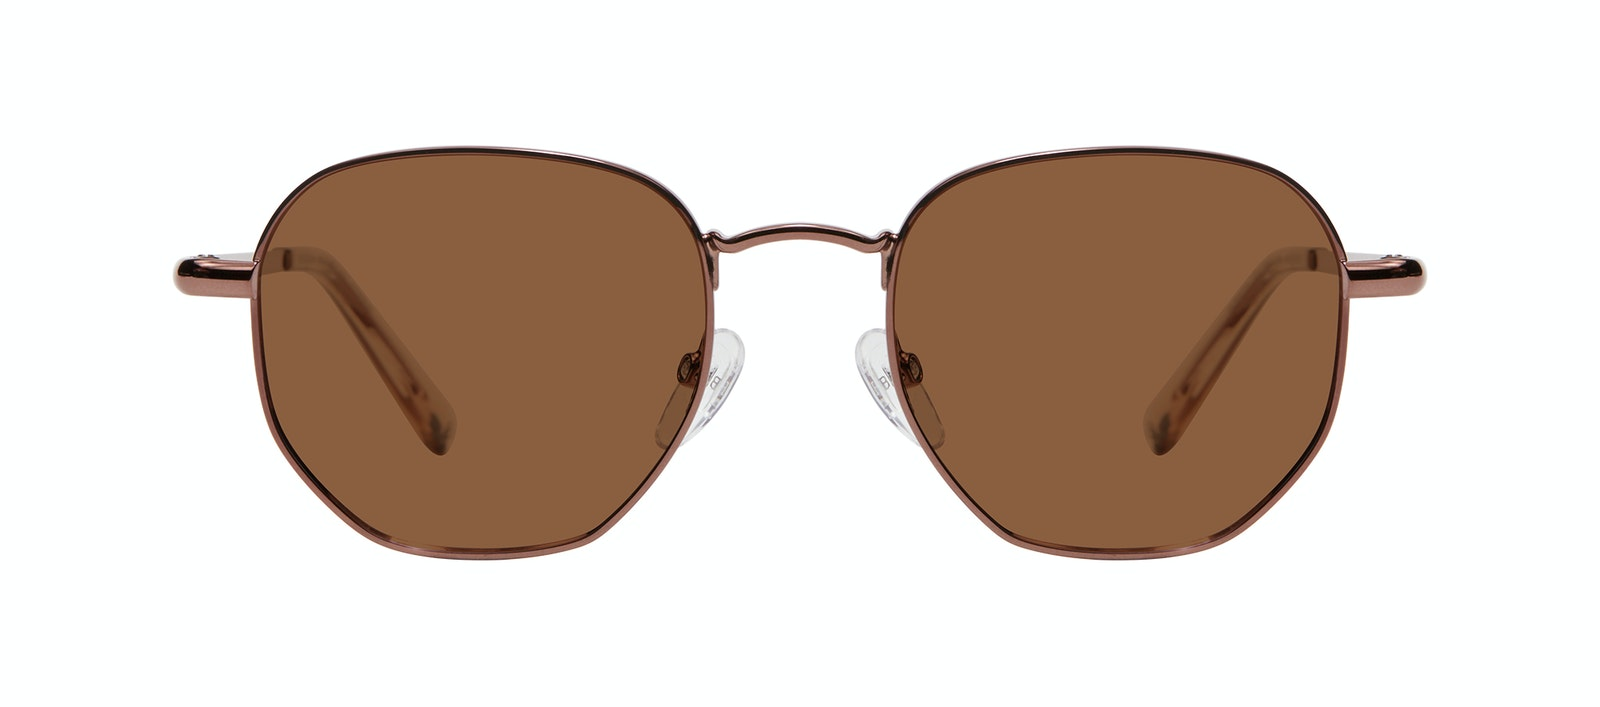 Affordable Fashion Glasses Round Sunglasses Women Aura Copper Front